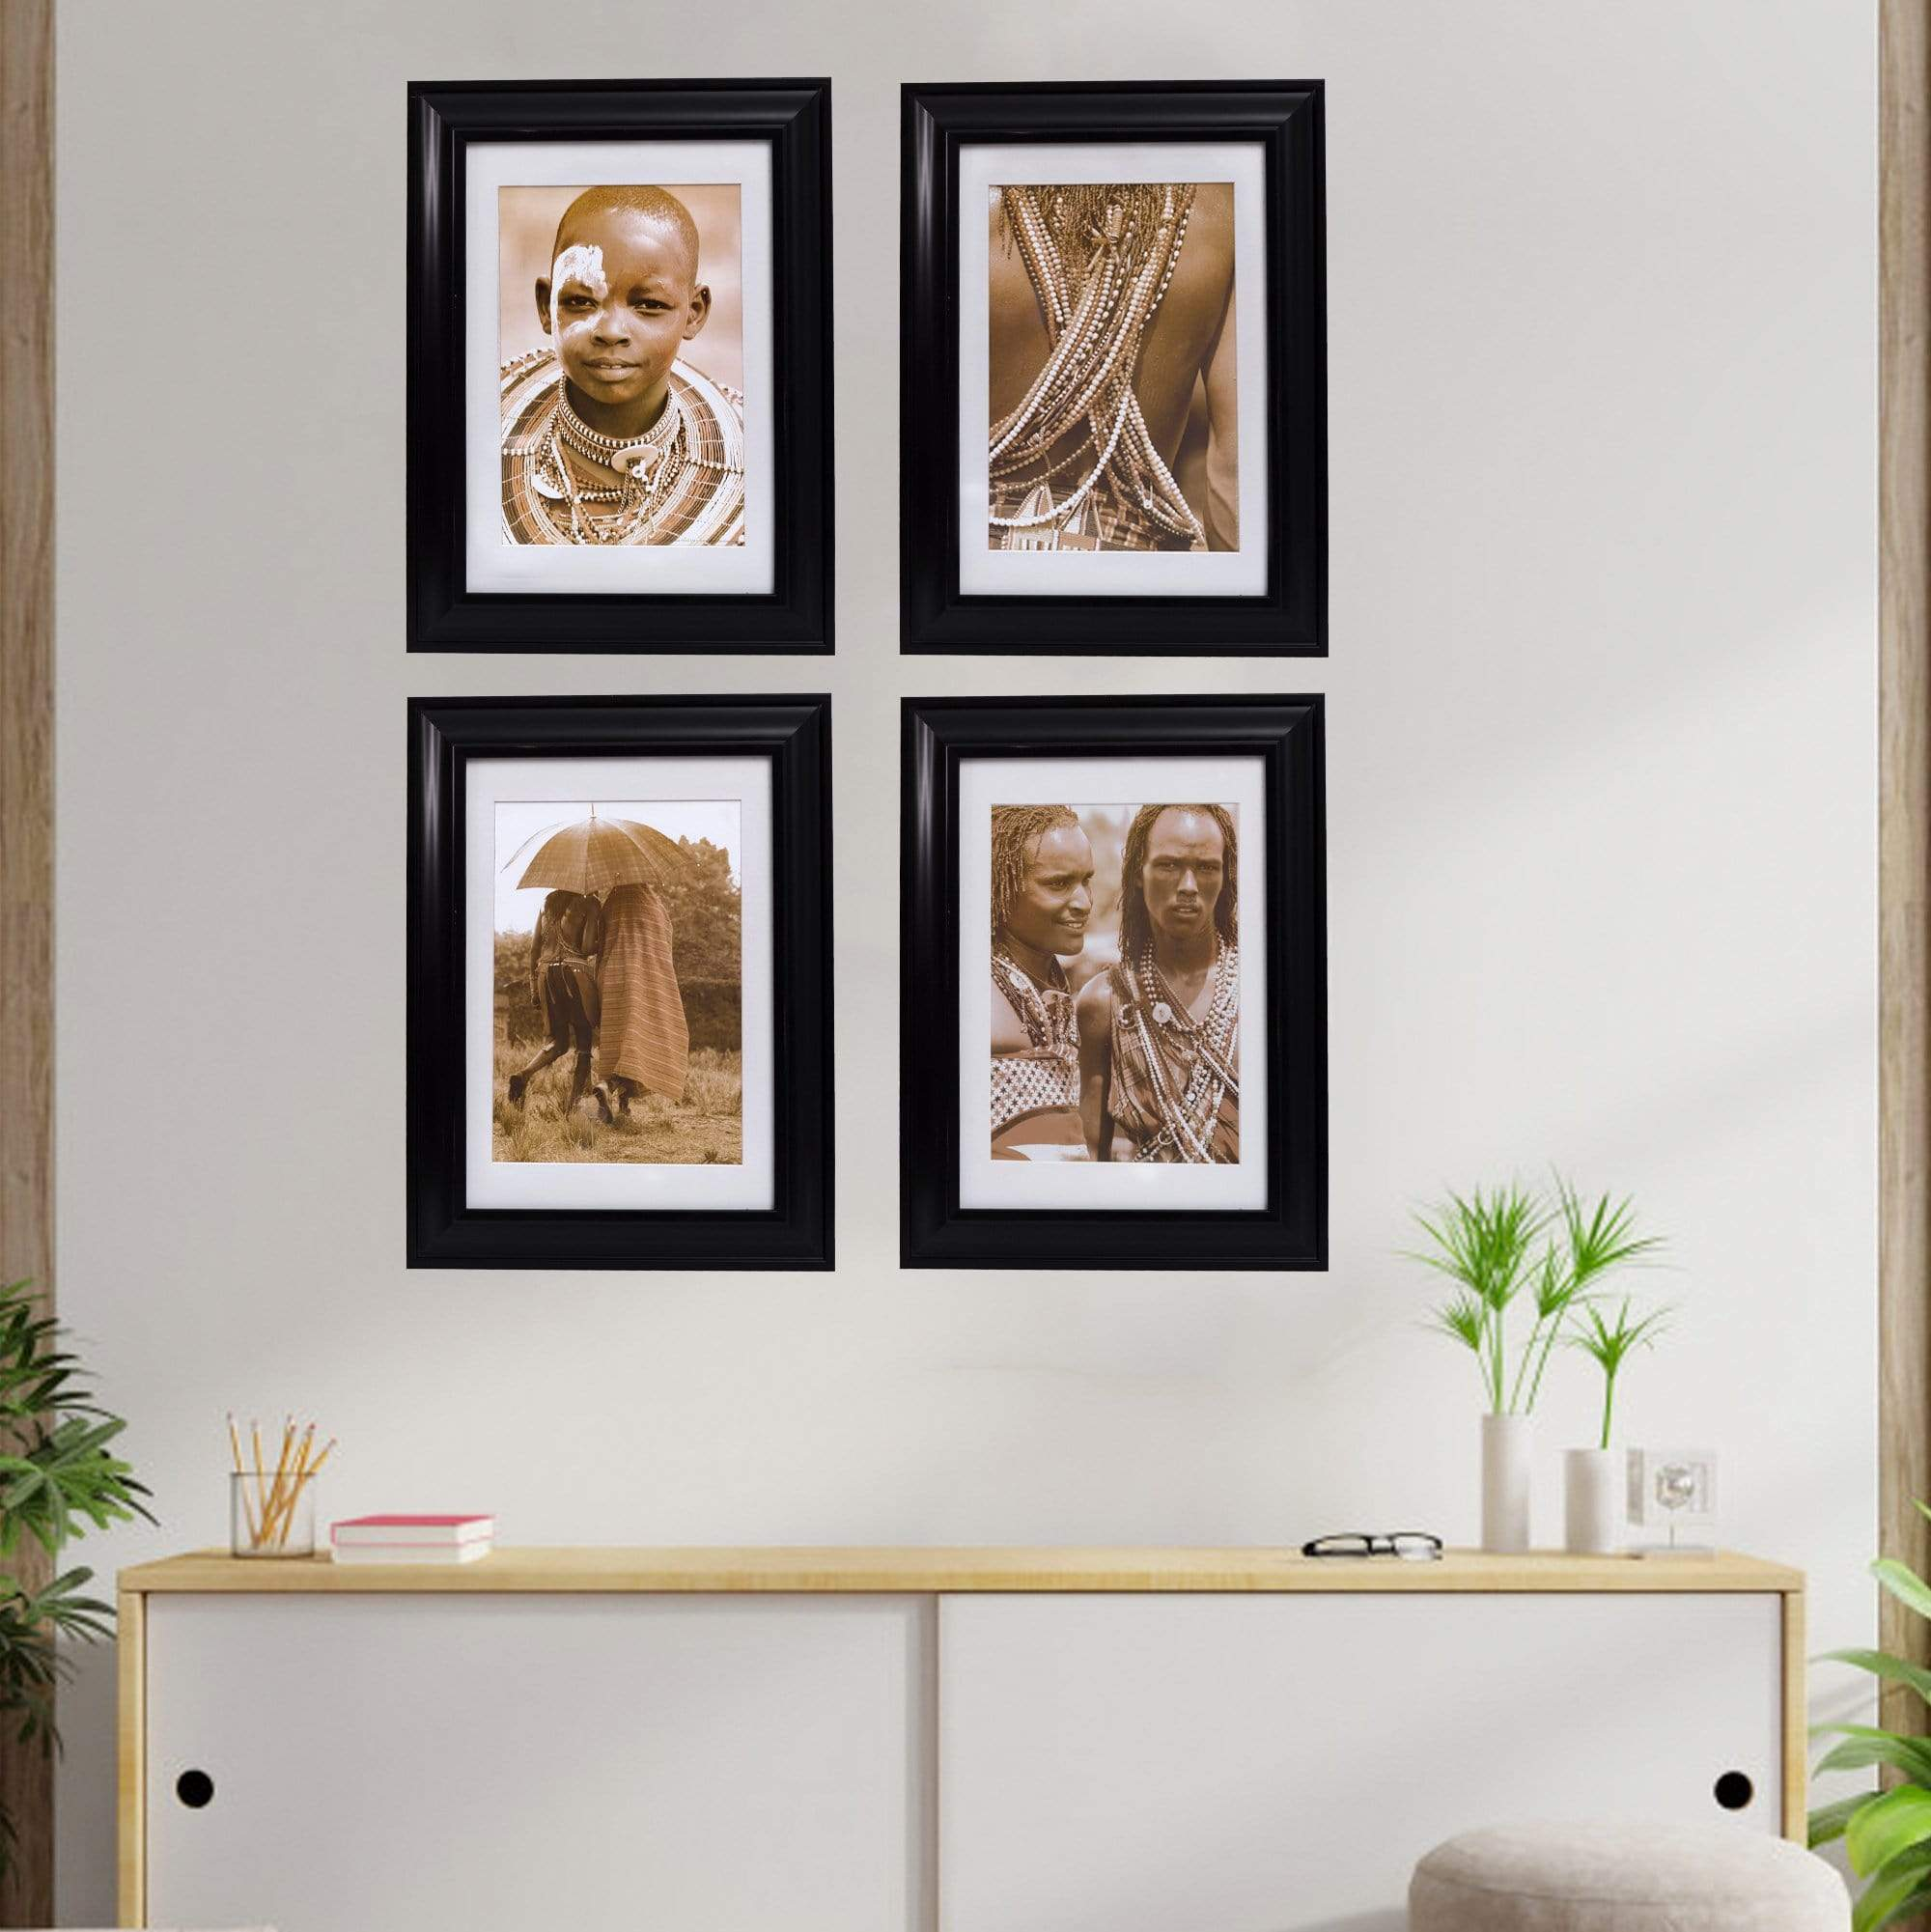 Wall Prints Fine African Framed Art Prints, Set of 4